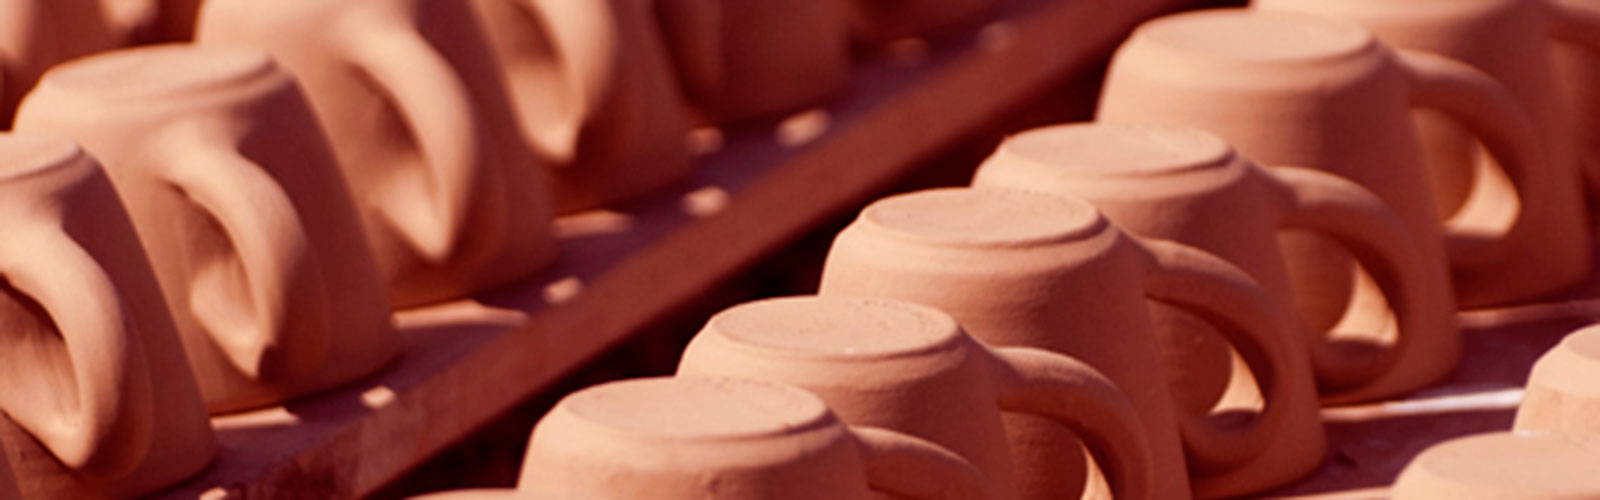 Ceramics prepared for the oven